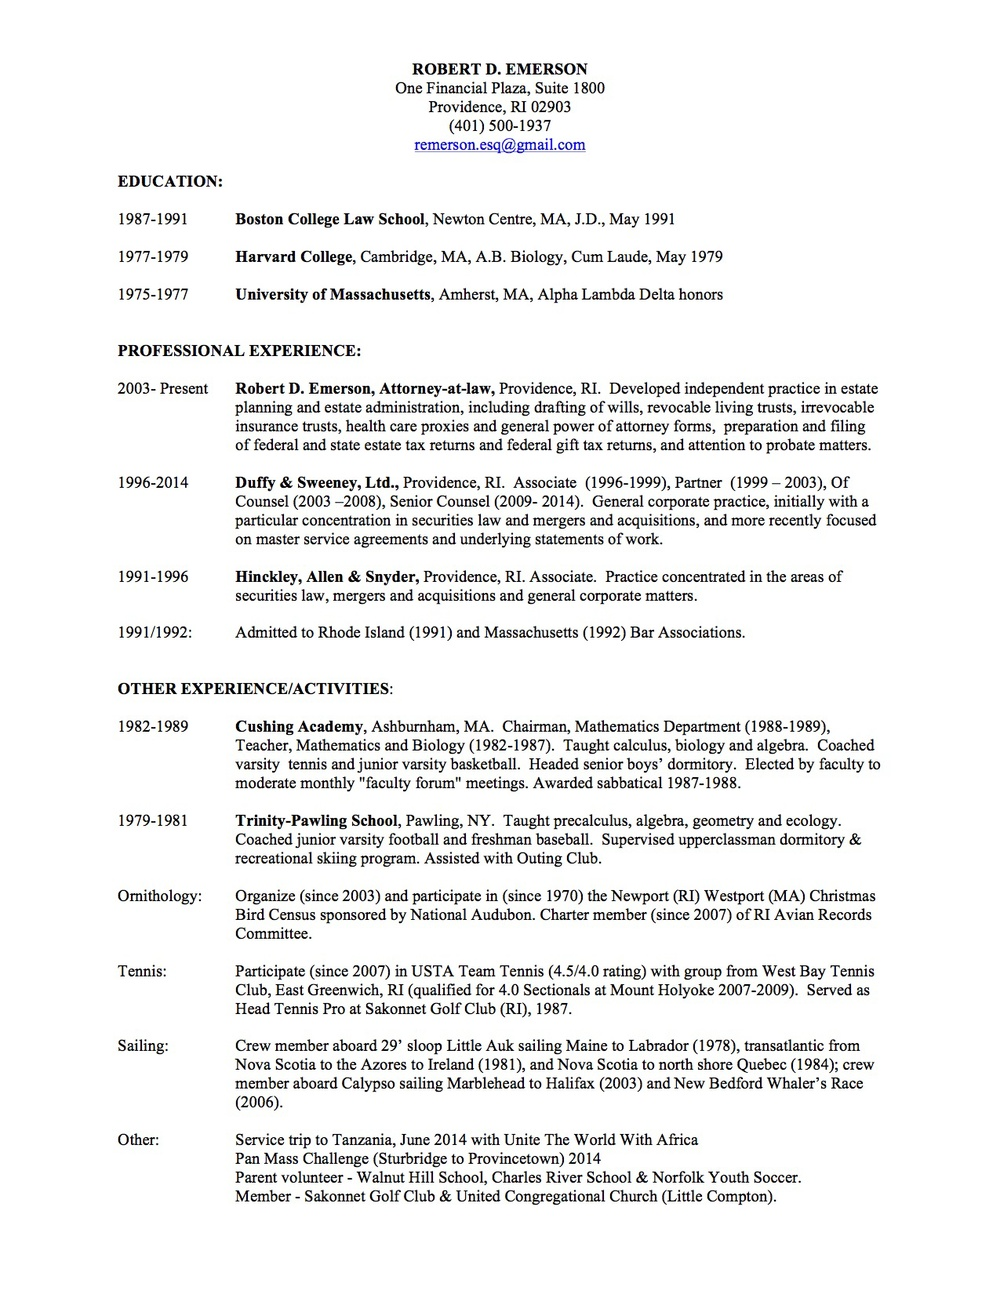 Resume — Robert D. Emerson, Attorney at Law